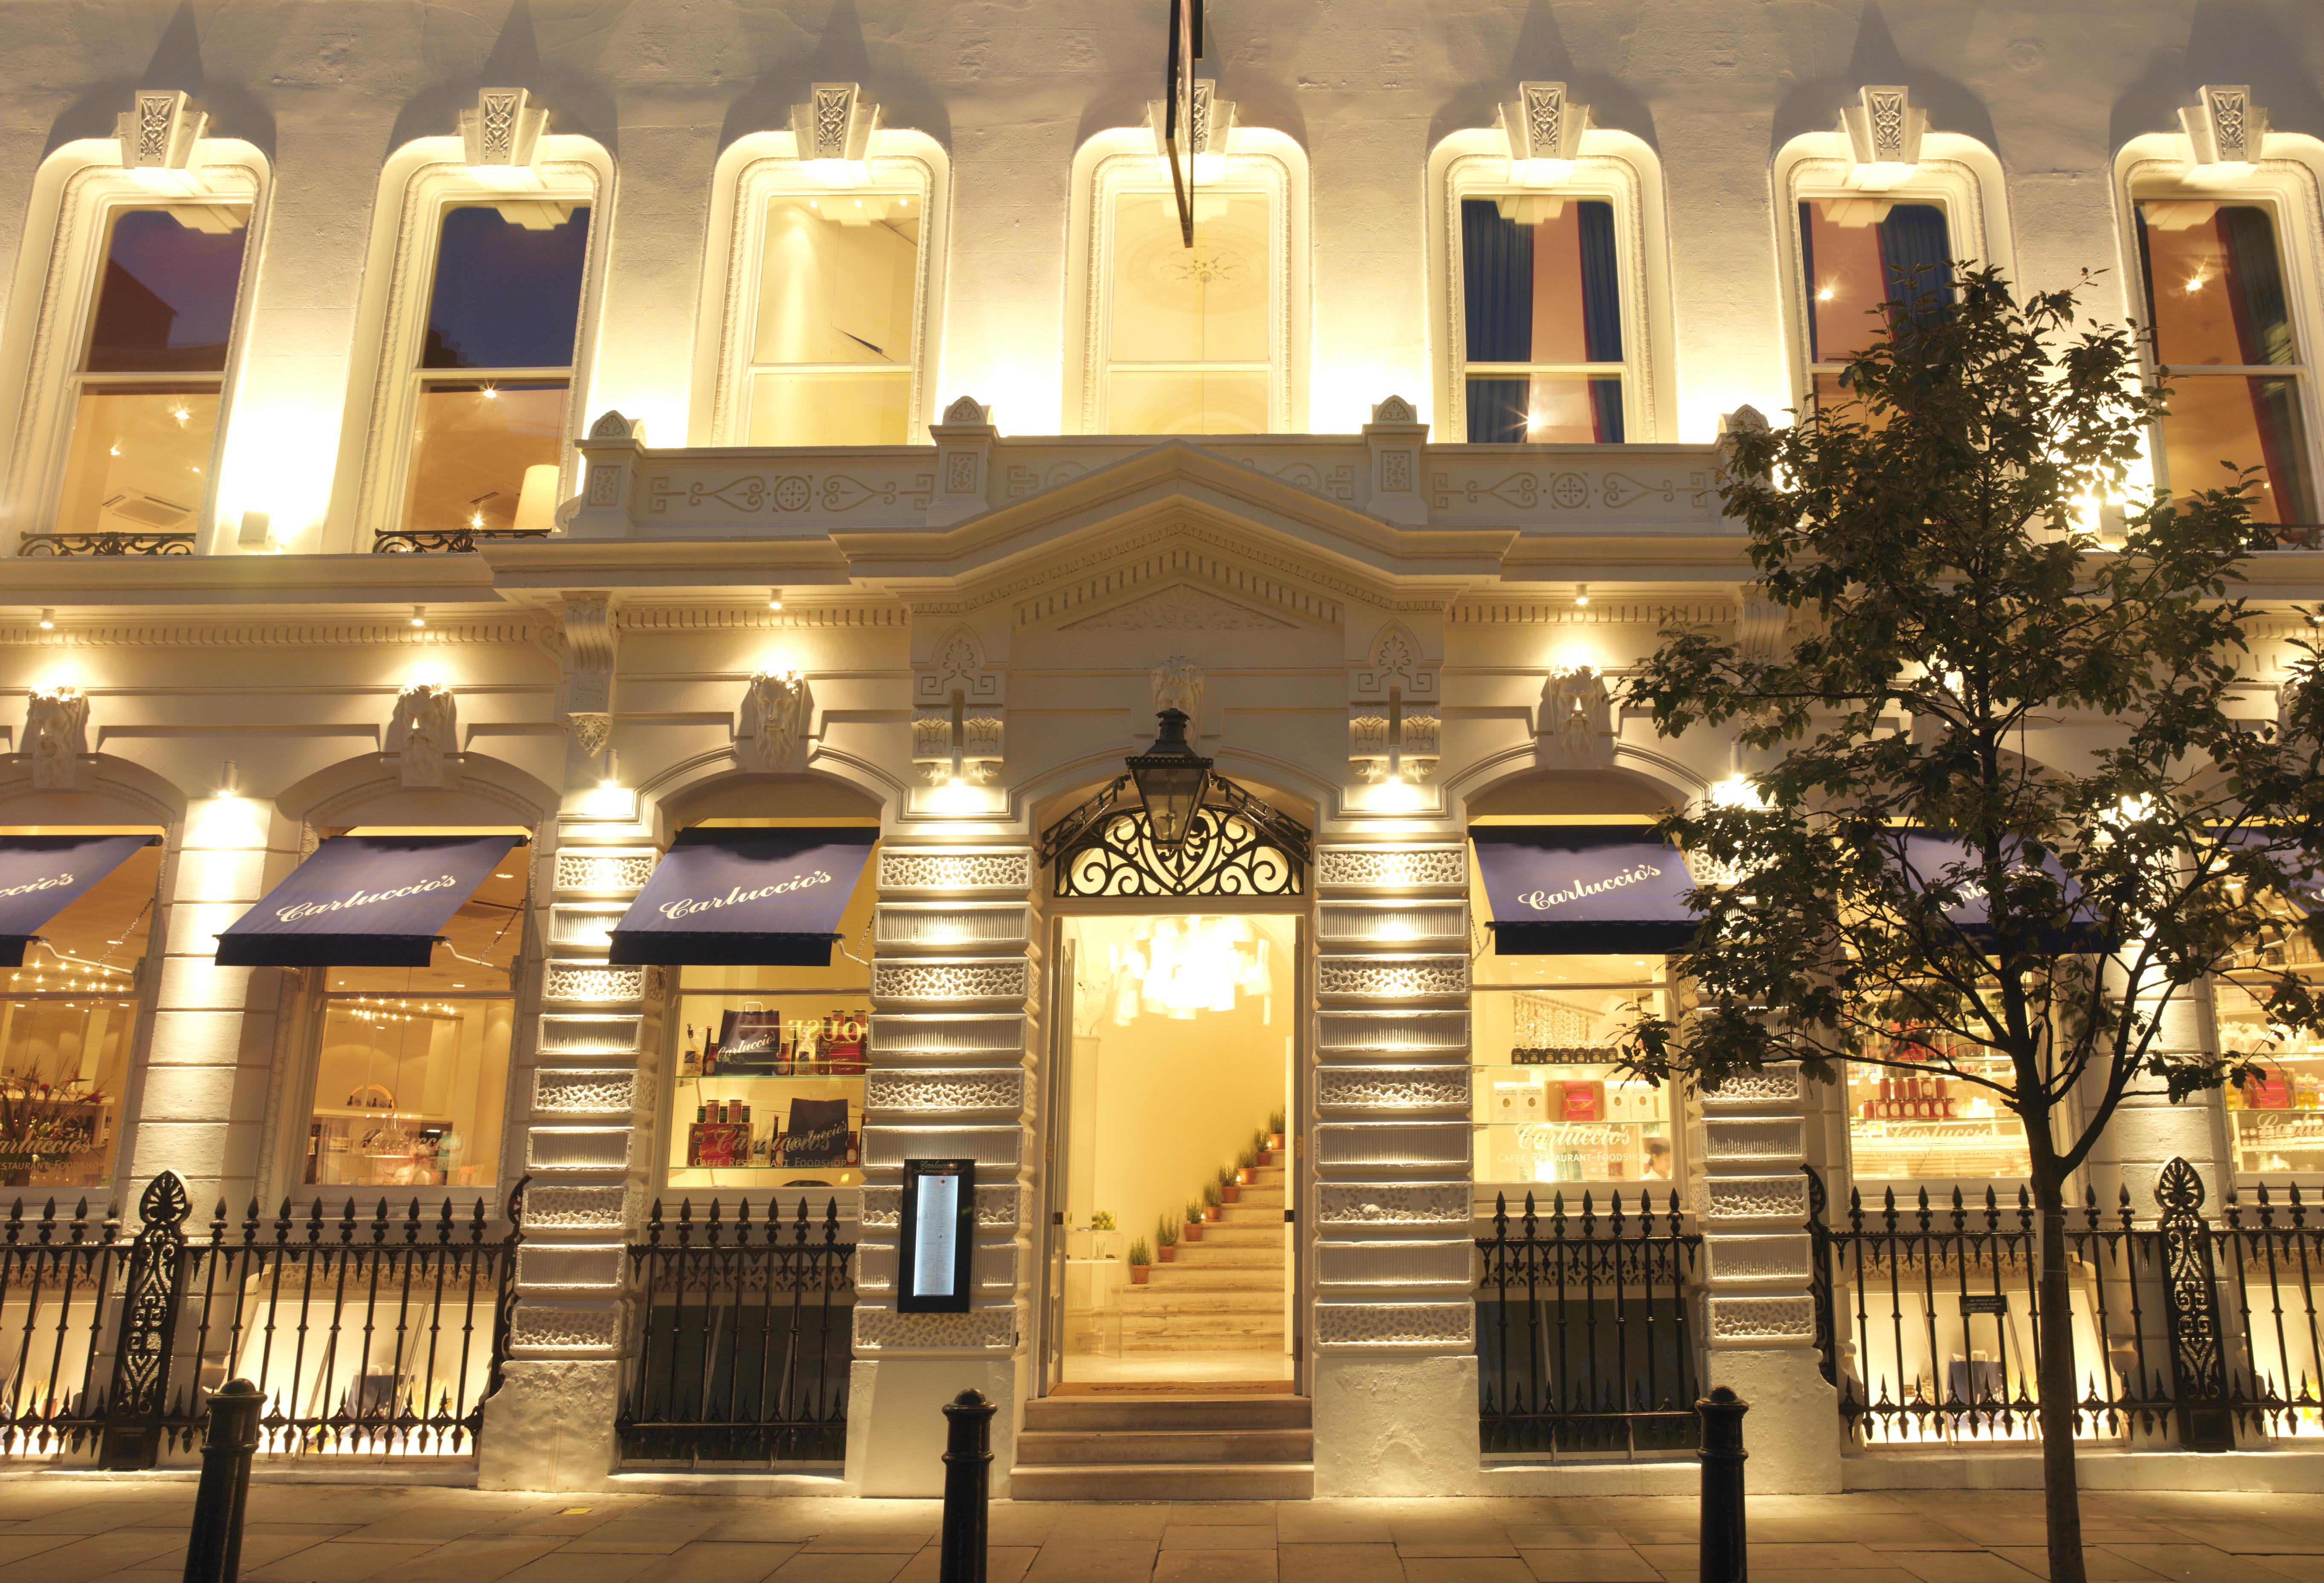 Inspiring Carluccios Launches Springsummer Menu  Lifes Loves With Entrancing  Carluccios Has Launched A New Spring  Summer Menu So I Was Invited  Along To The Garrick Street Restaurant Near Covent Garden To Celebrate With Alluring Wooden Garden Furniture Treatment Also Garden Birds Wallpaper In Addition Garden Furniture Argos Clearance And How To Create Rock Garden As Well As Garden Under Stairs Additionally Stk Covent Garden Menu From Lifeslovesco With   Entrancing Carluccios Launches Springsummer Menu  Lifes Loves With Alluring  Carluccios Has Launched A New Spring  Summer Menu So I Was Invited  Along To The Garrick Street Restaurant Near Covent Garden To Celebrate And Inspiring Wooden Garden Furniture Treatment Also Garden Birds Wallpaper In Addition Garden Furniture Argos Clearance From Lifeslovesco